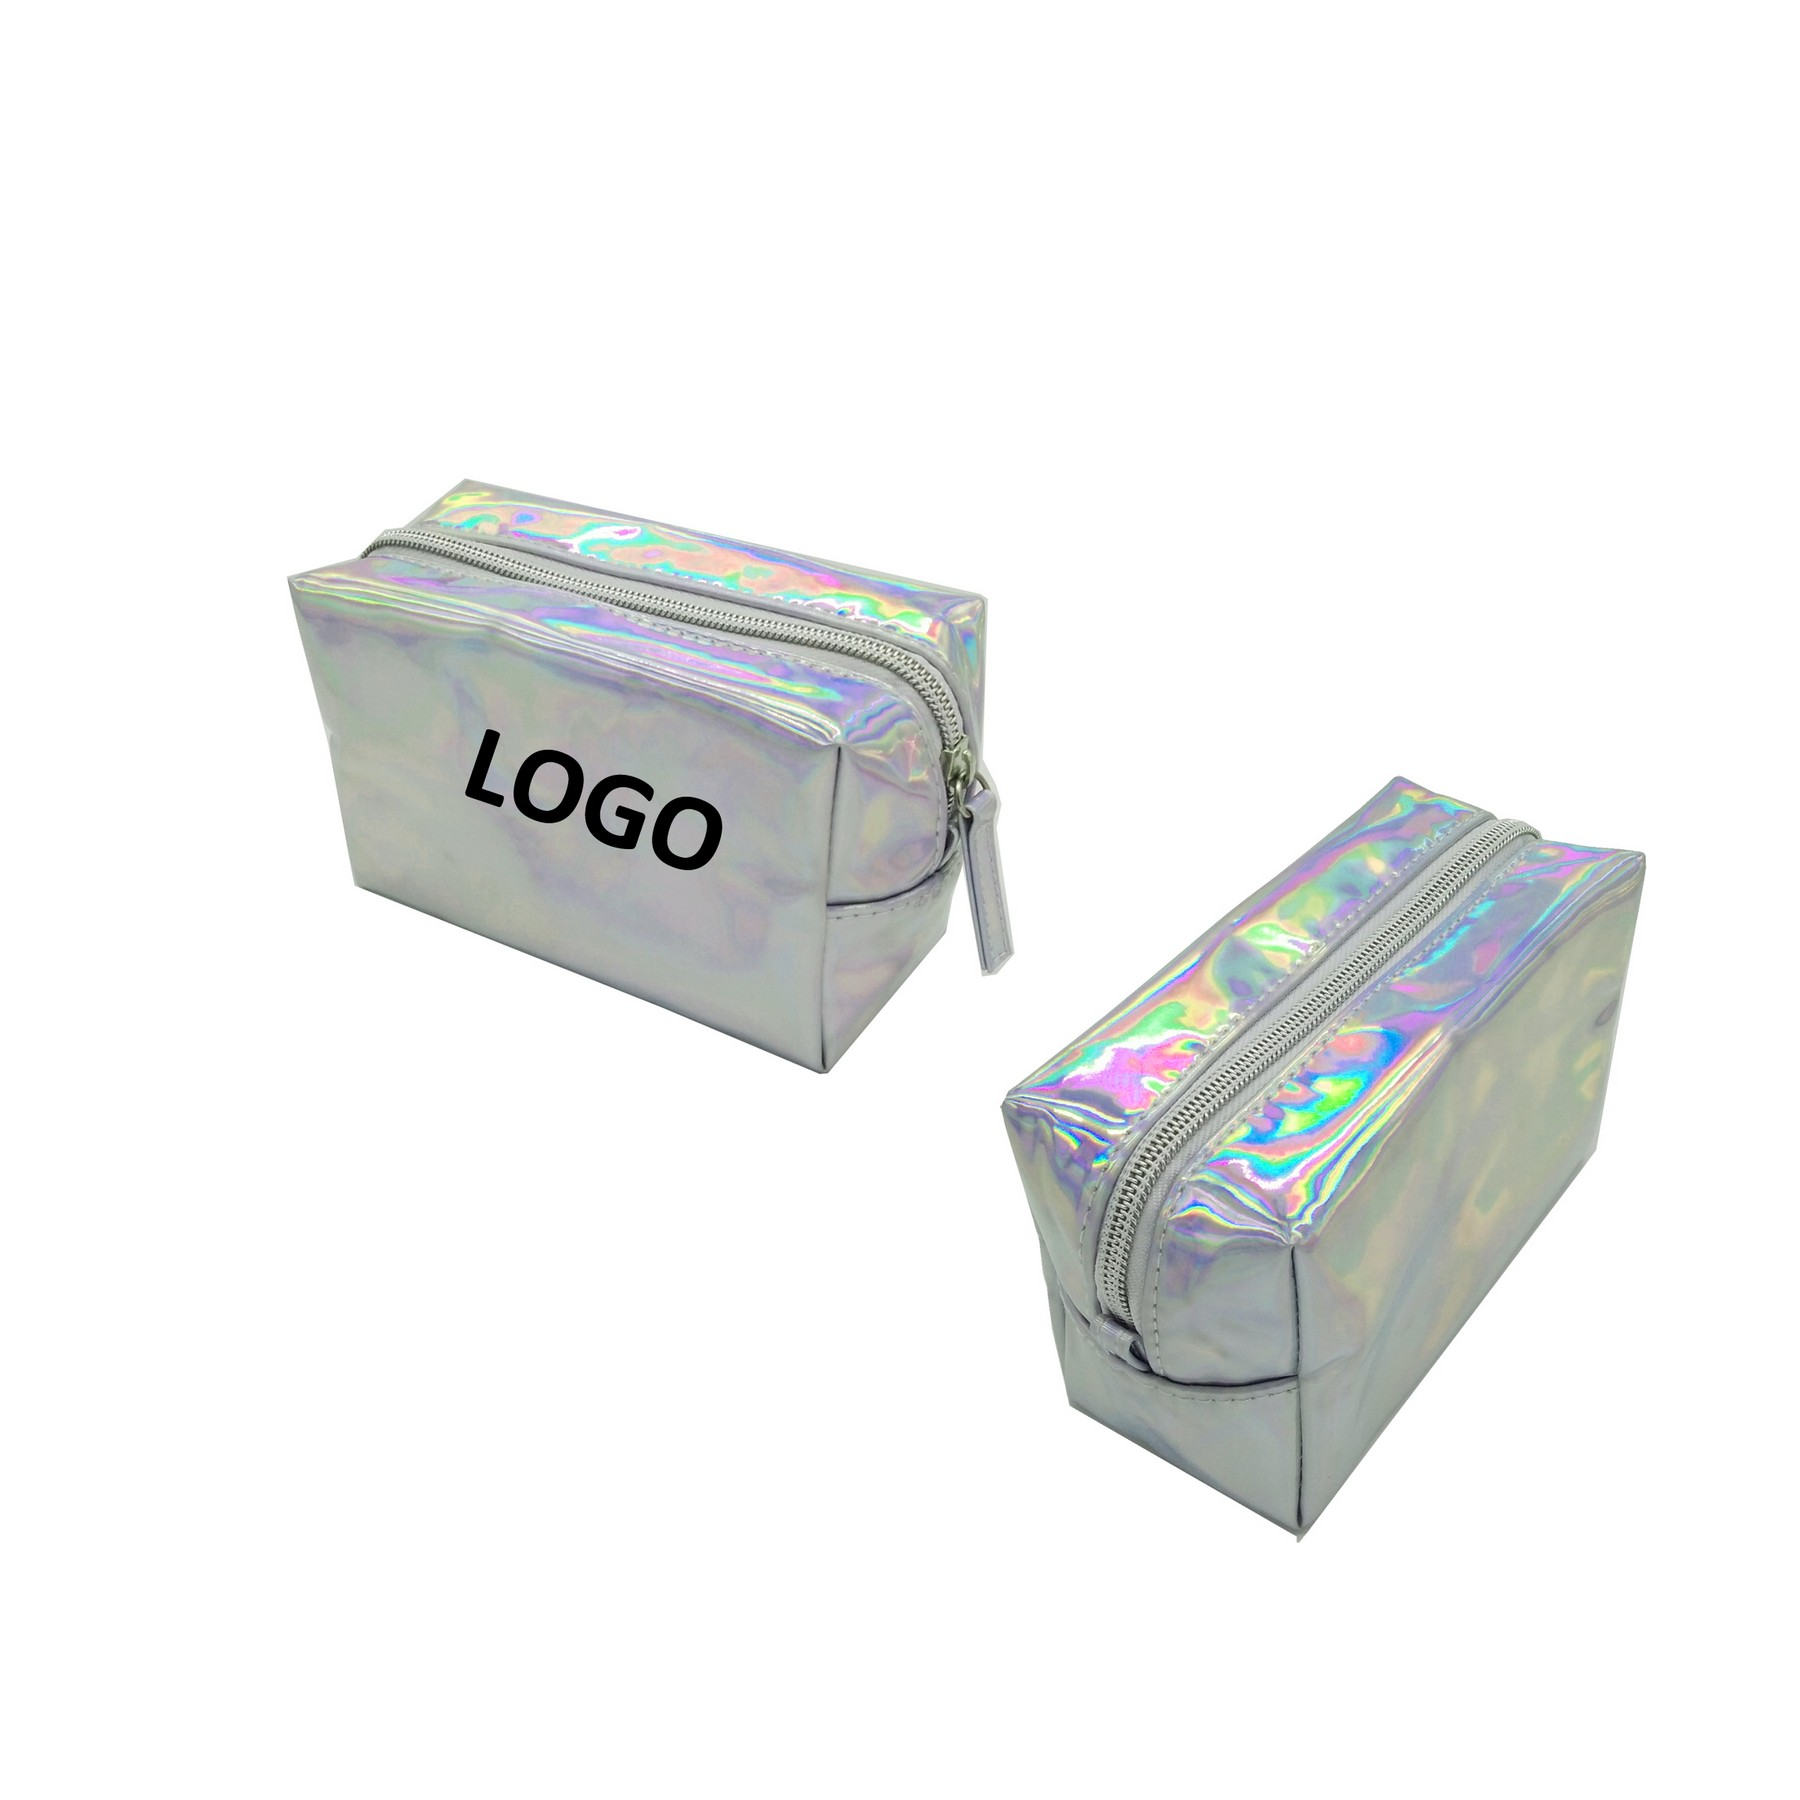 PVC Women Laser Magnificent Shiny Makeup Colorful Zipper Bag,Promotional Laser Cosmetic Bag Supplier In China,COSMETIC BAG